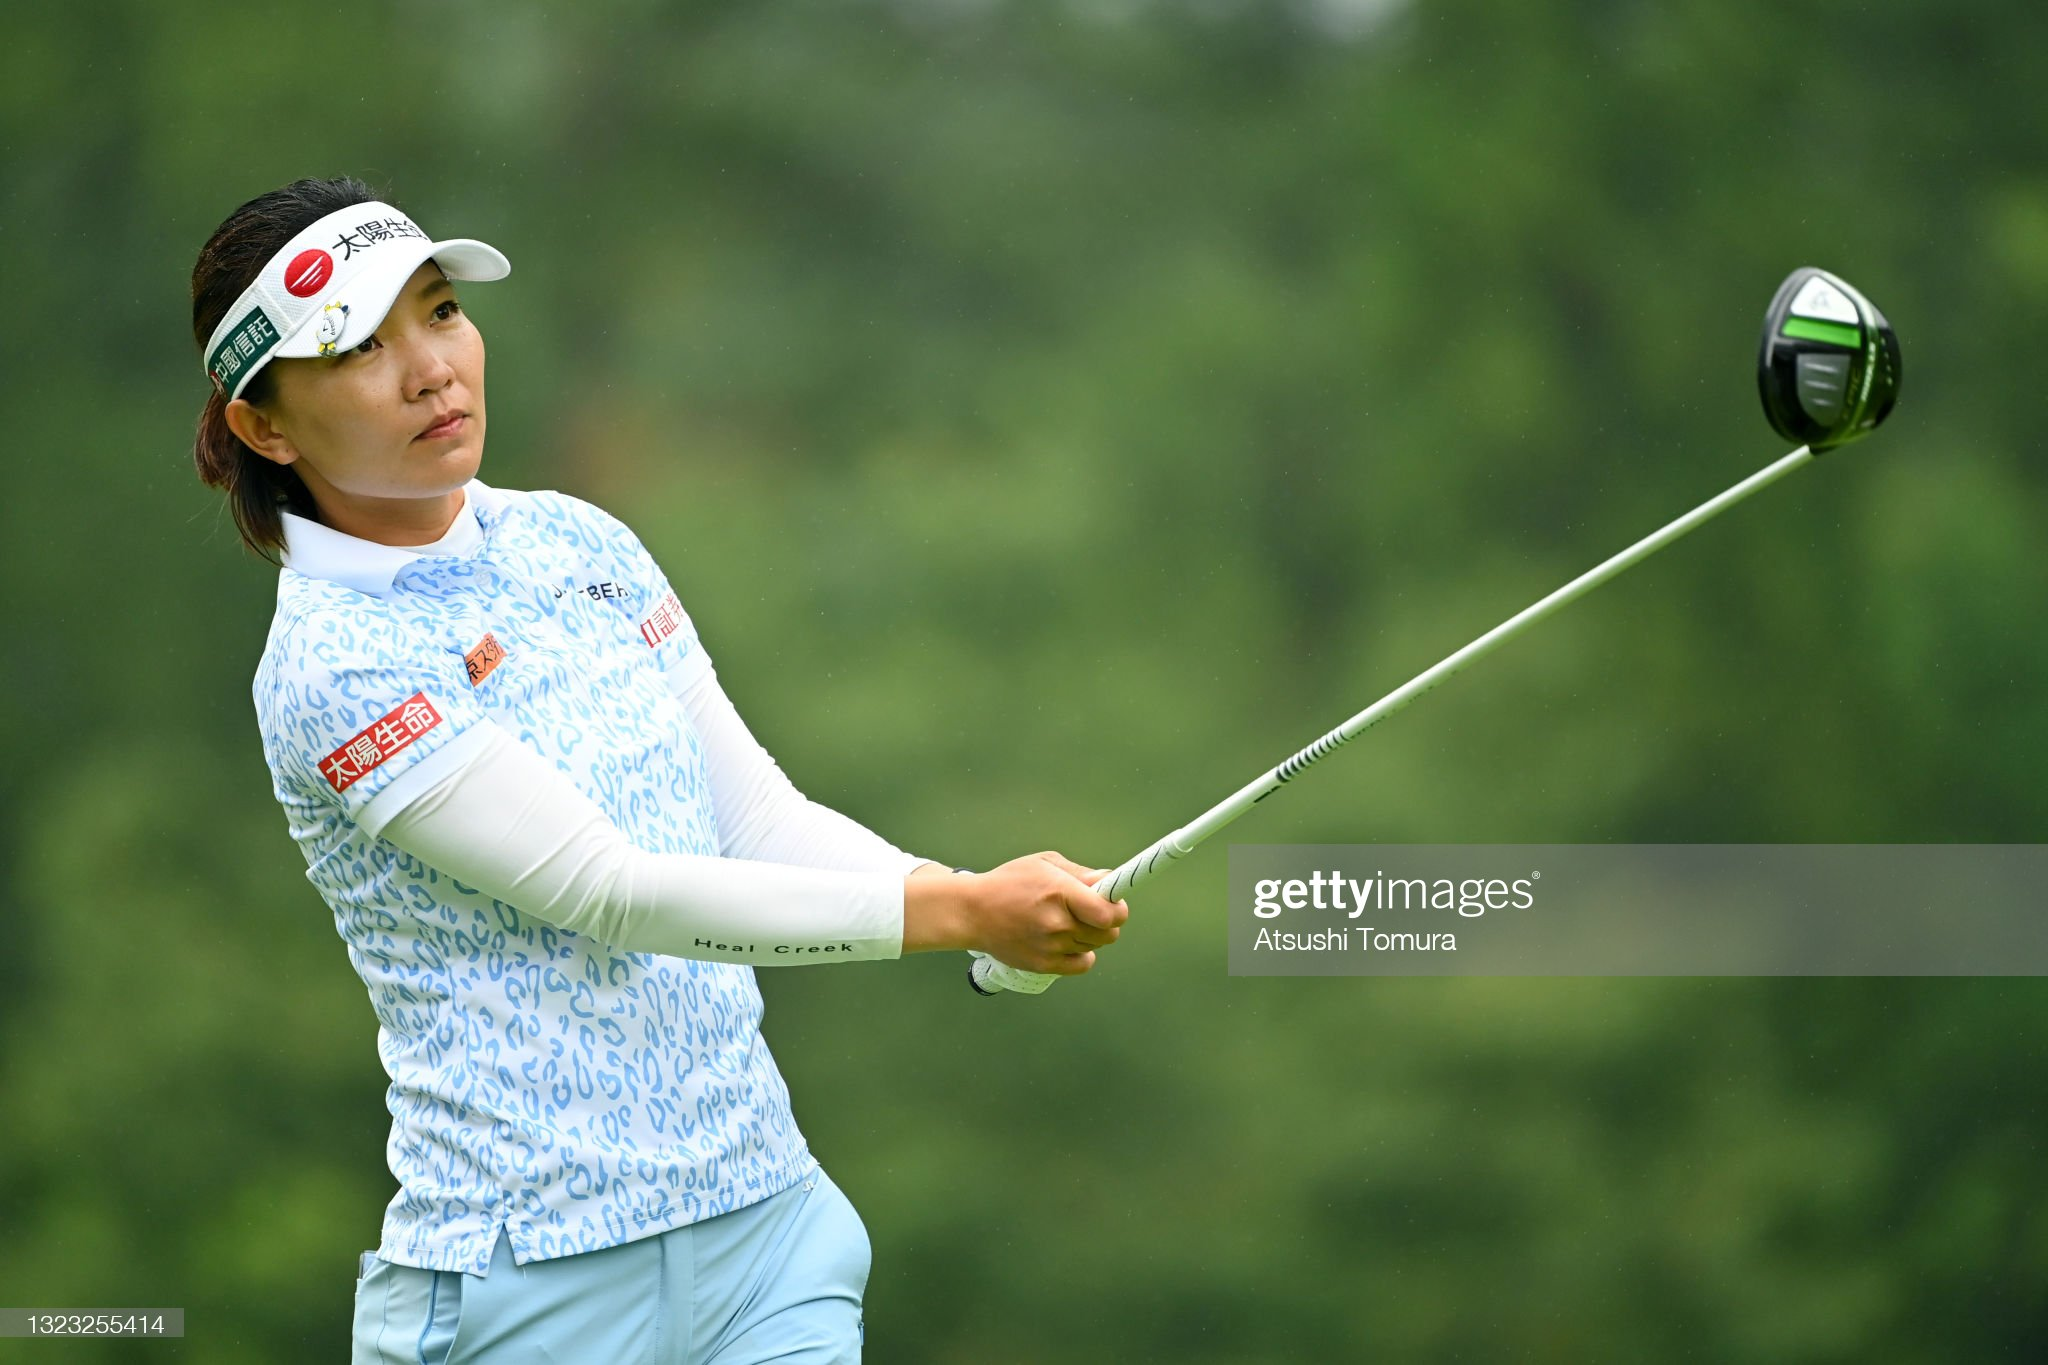 https://media.gettyimages.com/photos/teresa-lu-of-chinese-taipei-hits-her-tee-shot-on-the-1st-hole-during-picture-id1323255414?s=2048x2048